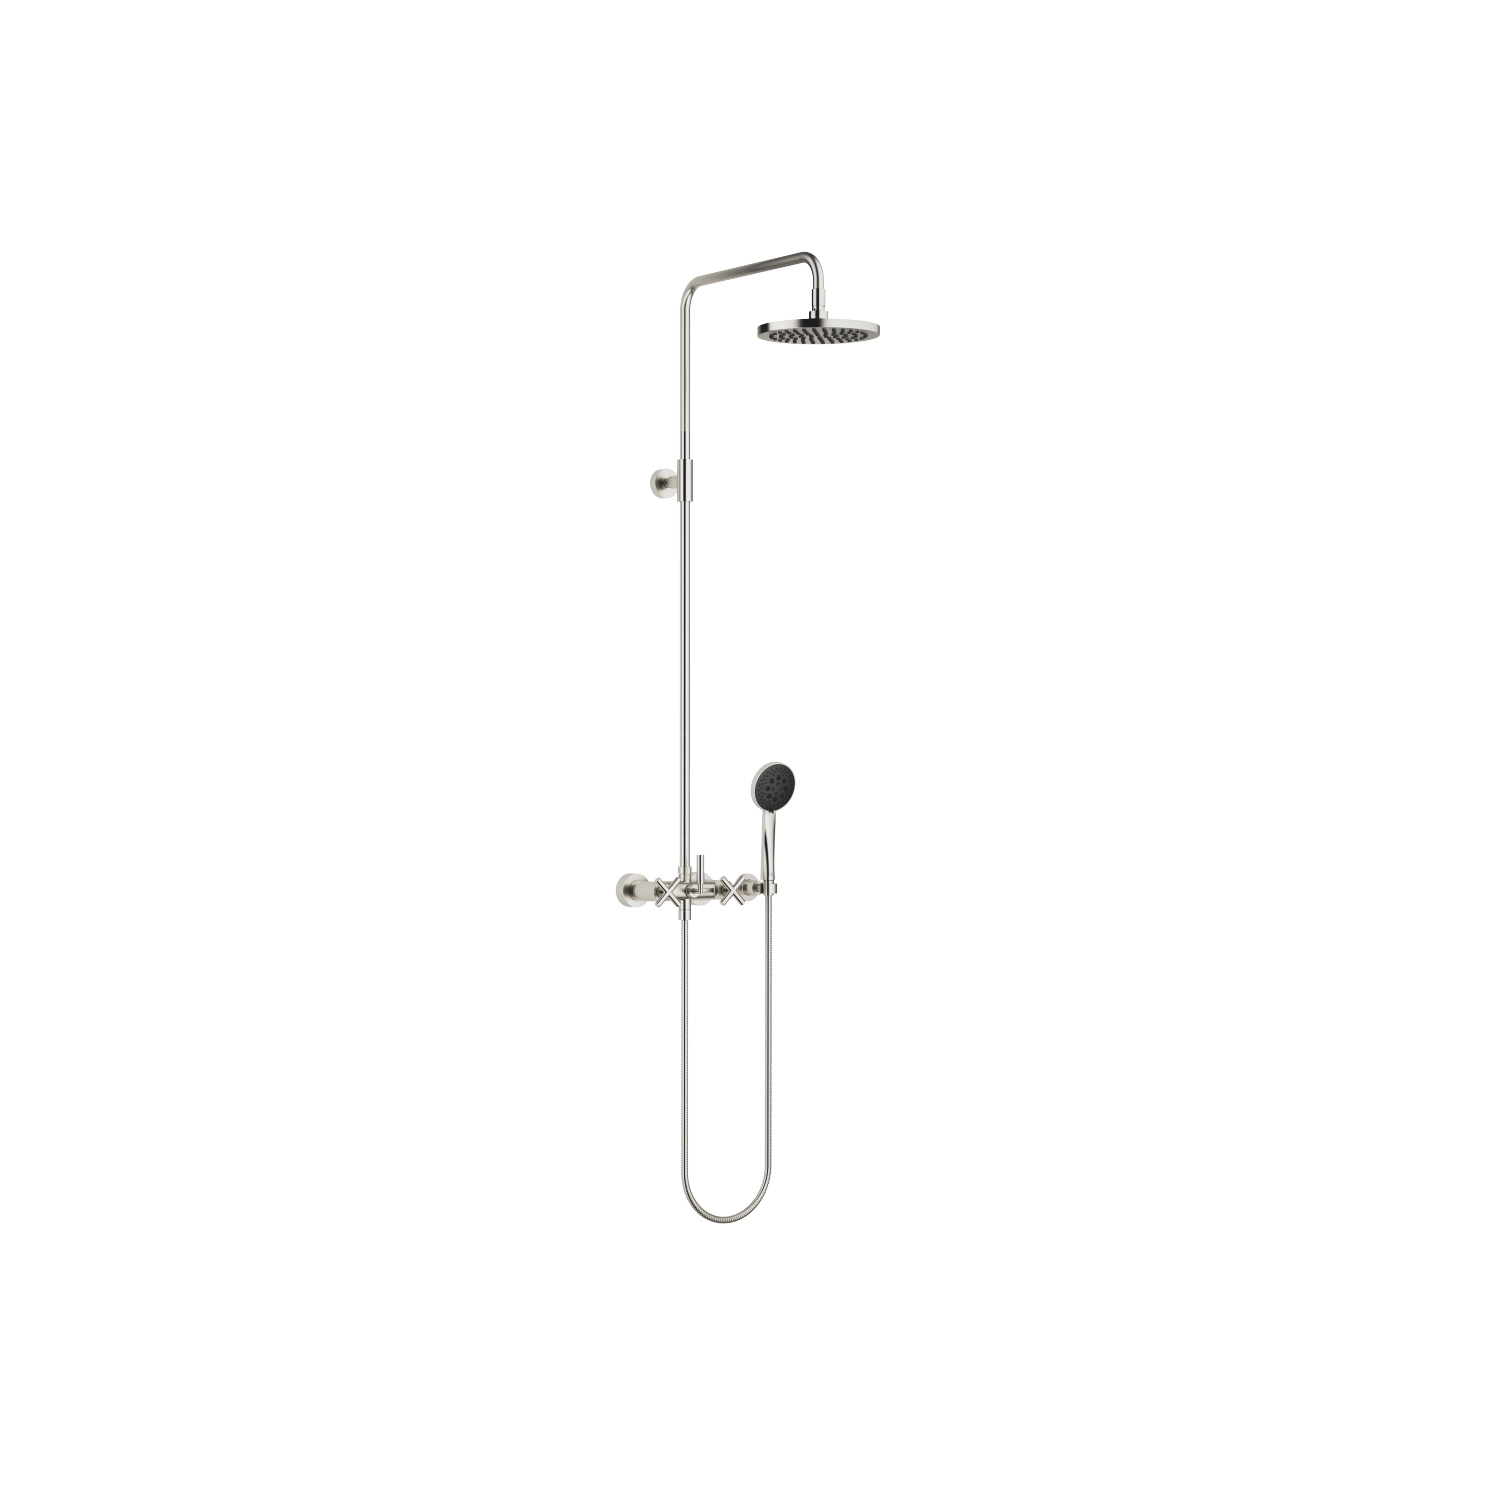 Shower mixer for wall mounting with fixed and hand shower - platinum matt